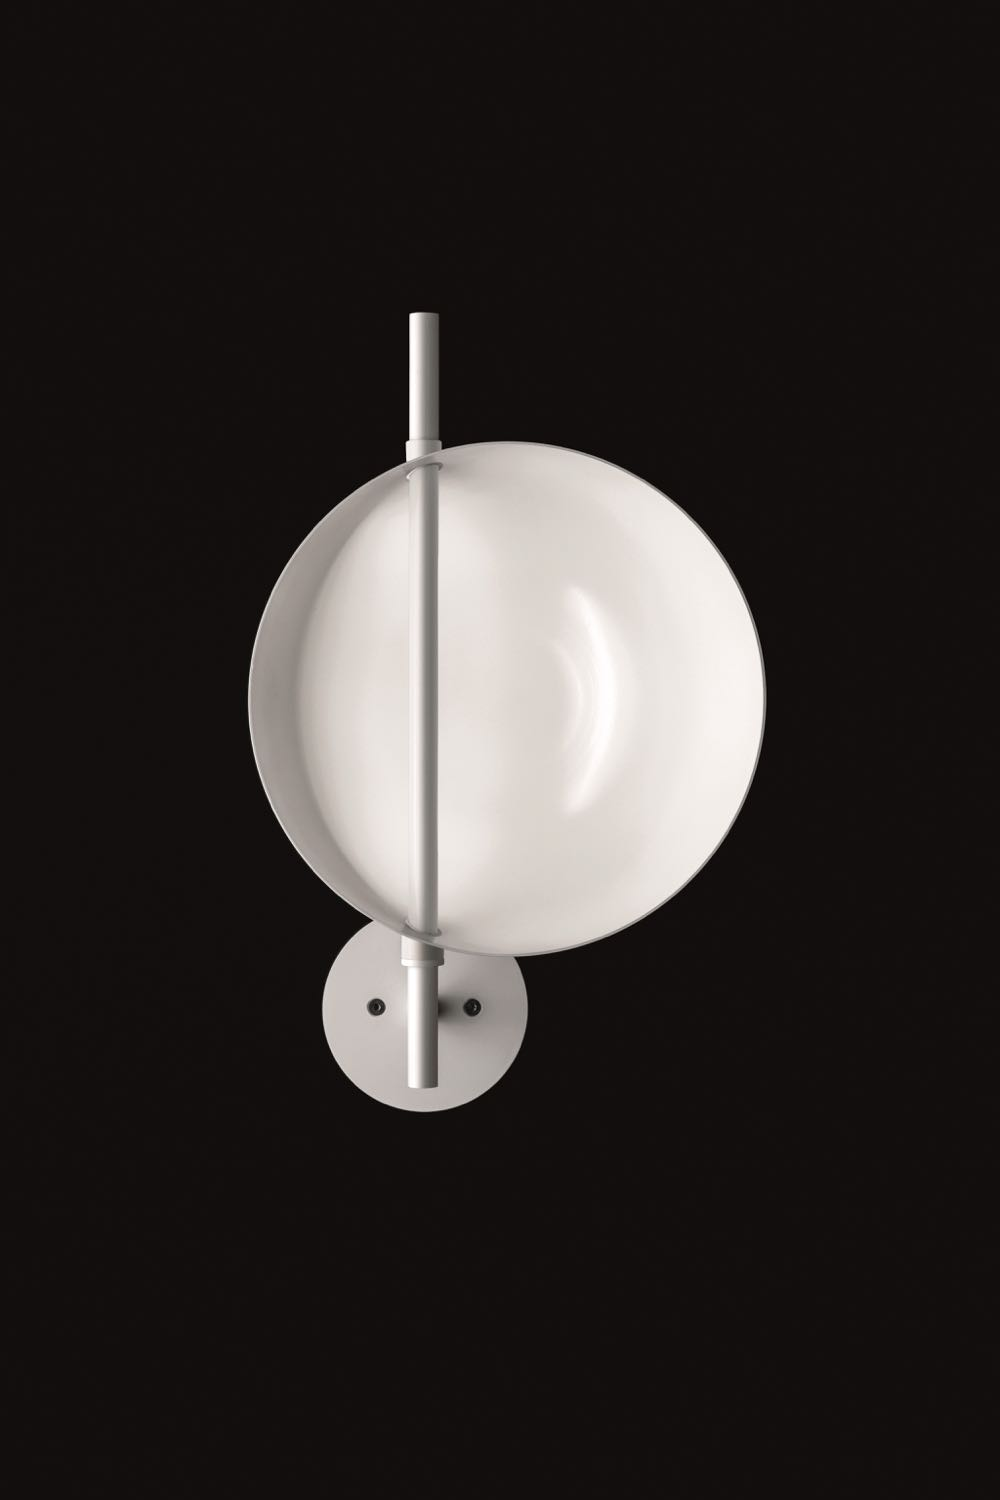 'Superluna 197' wall light by Victor Vasilev for Oluce.